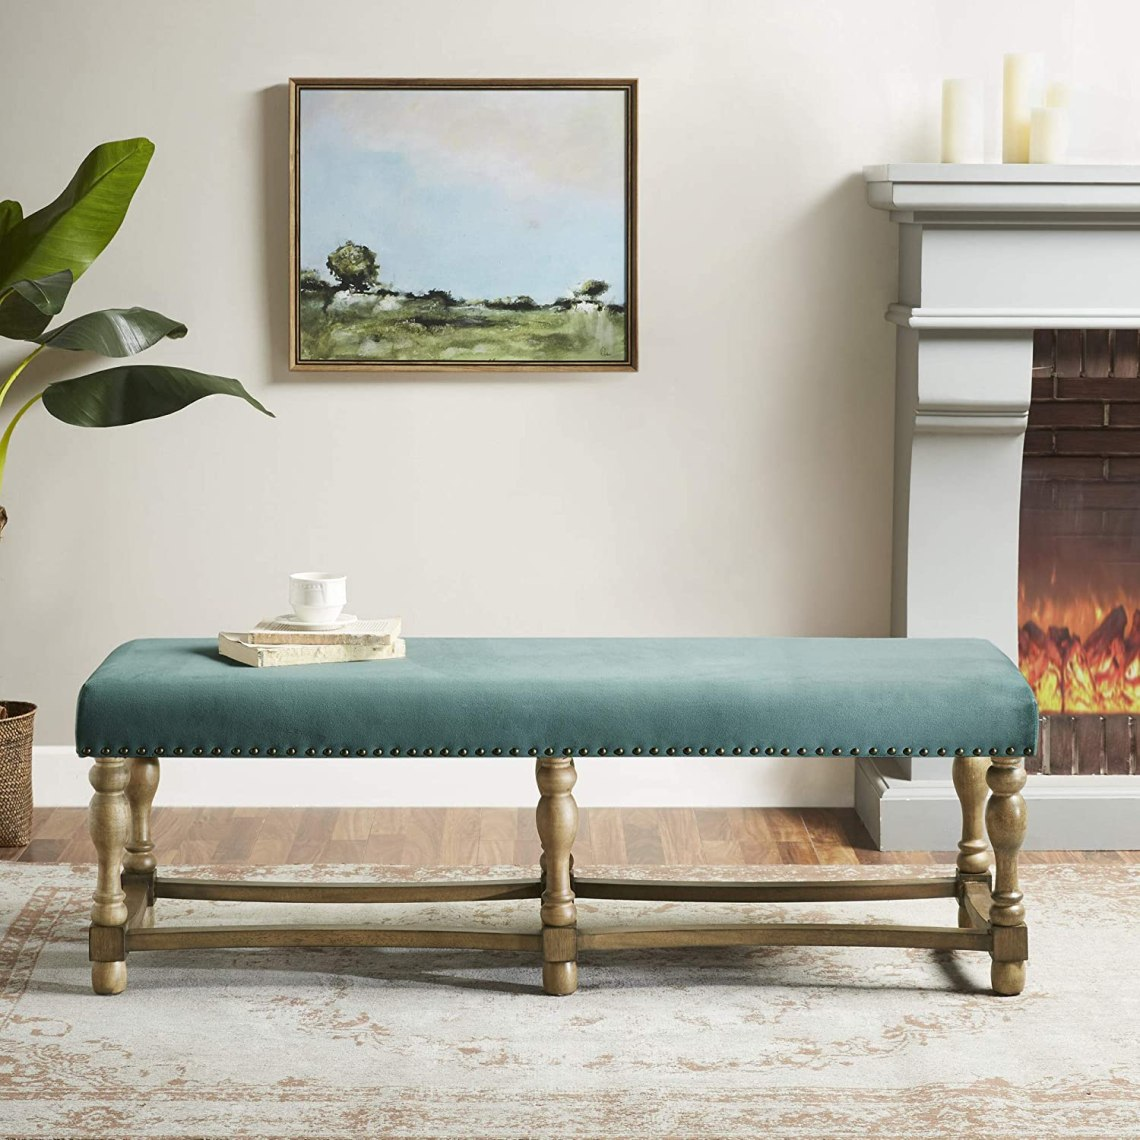 Solid Wood Green Fabric Upholstered Seat Living Room Furniture Modern Farmhouse Design Chaise Bedroom Lounge Martha Stewart Searles Accent Bench 54 X 18 X 18 Chaise Lounges Home Kitchen Sellingpro Co Id